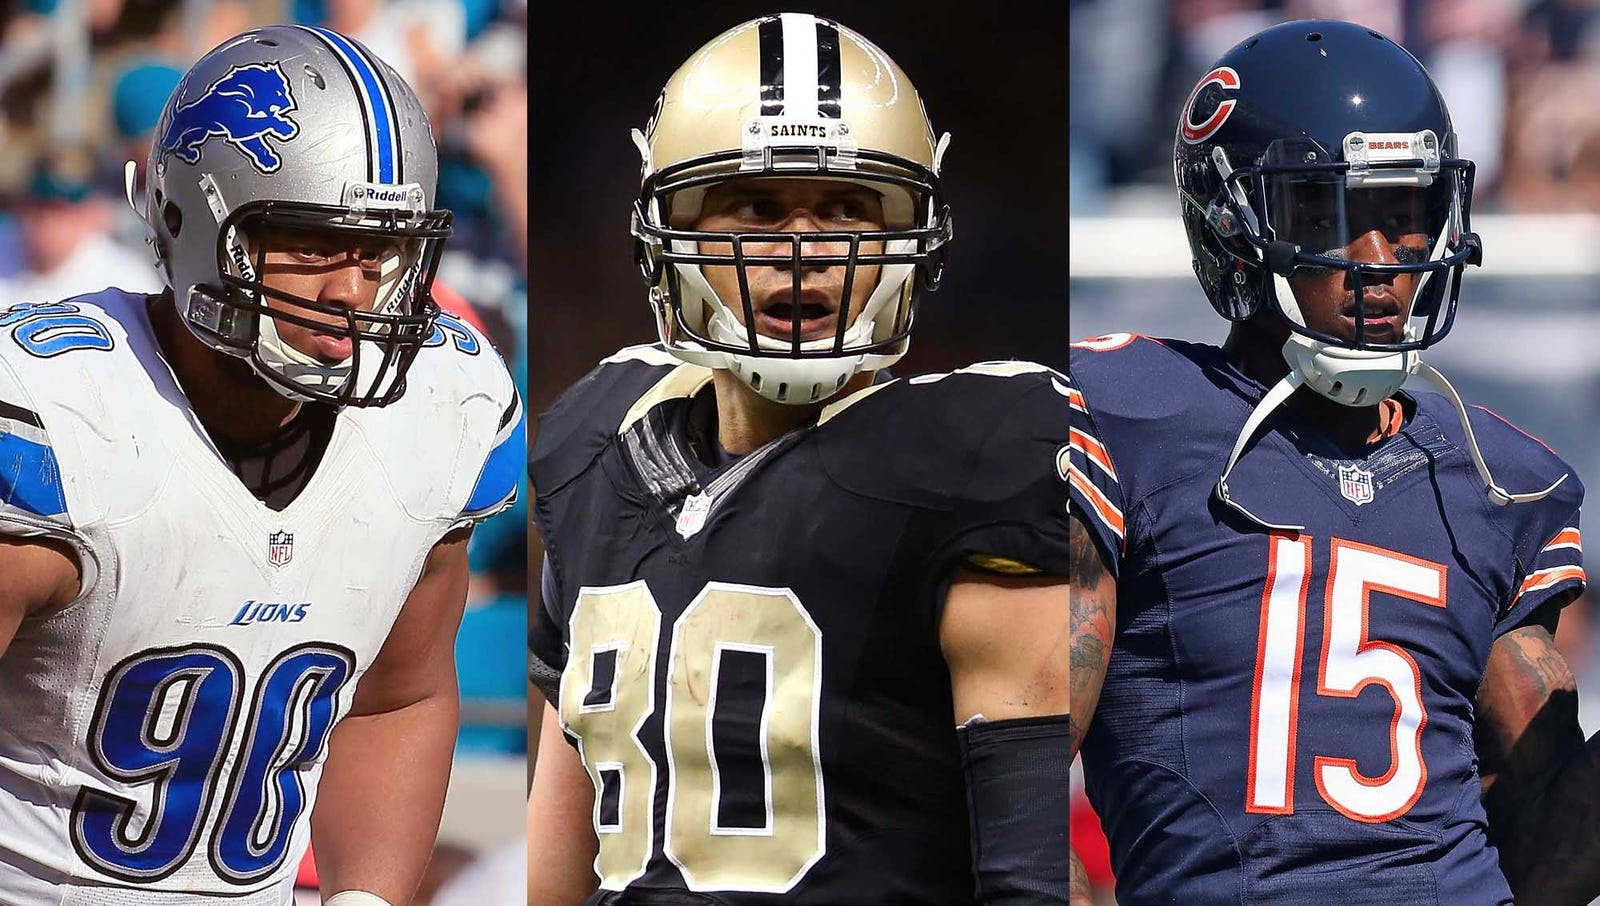 The first 72 hours of NFL free agency have ranked among the most frenzied and chaotic in league history, with a slew of high-profile players changing teams and signing record deals. Onion Sports breaks down the biggest moves thus far in this year's free agency period.